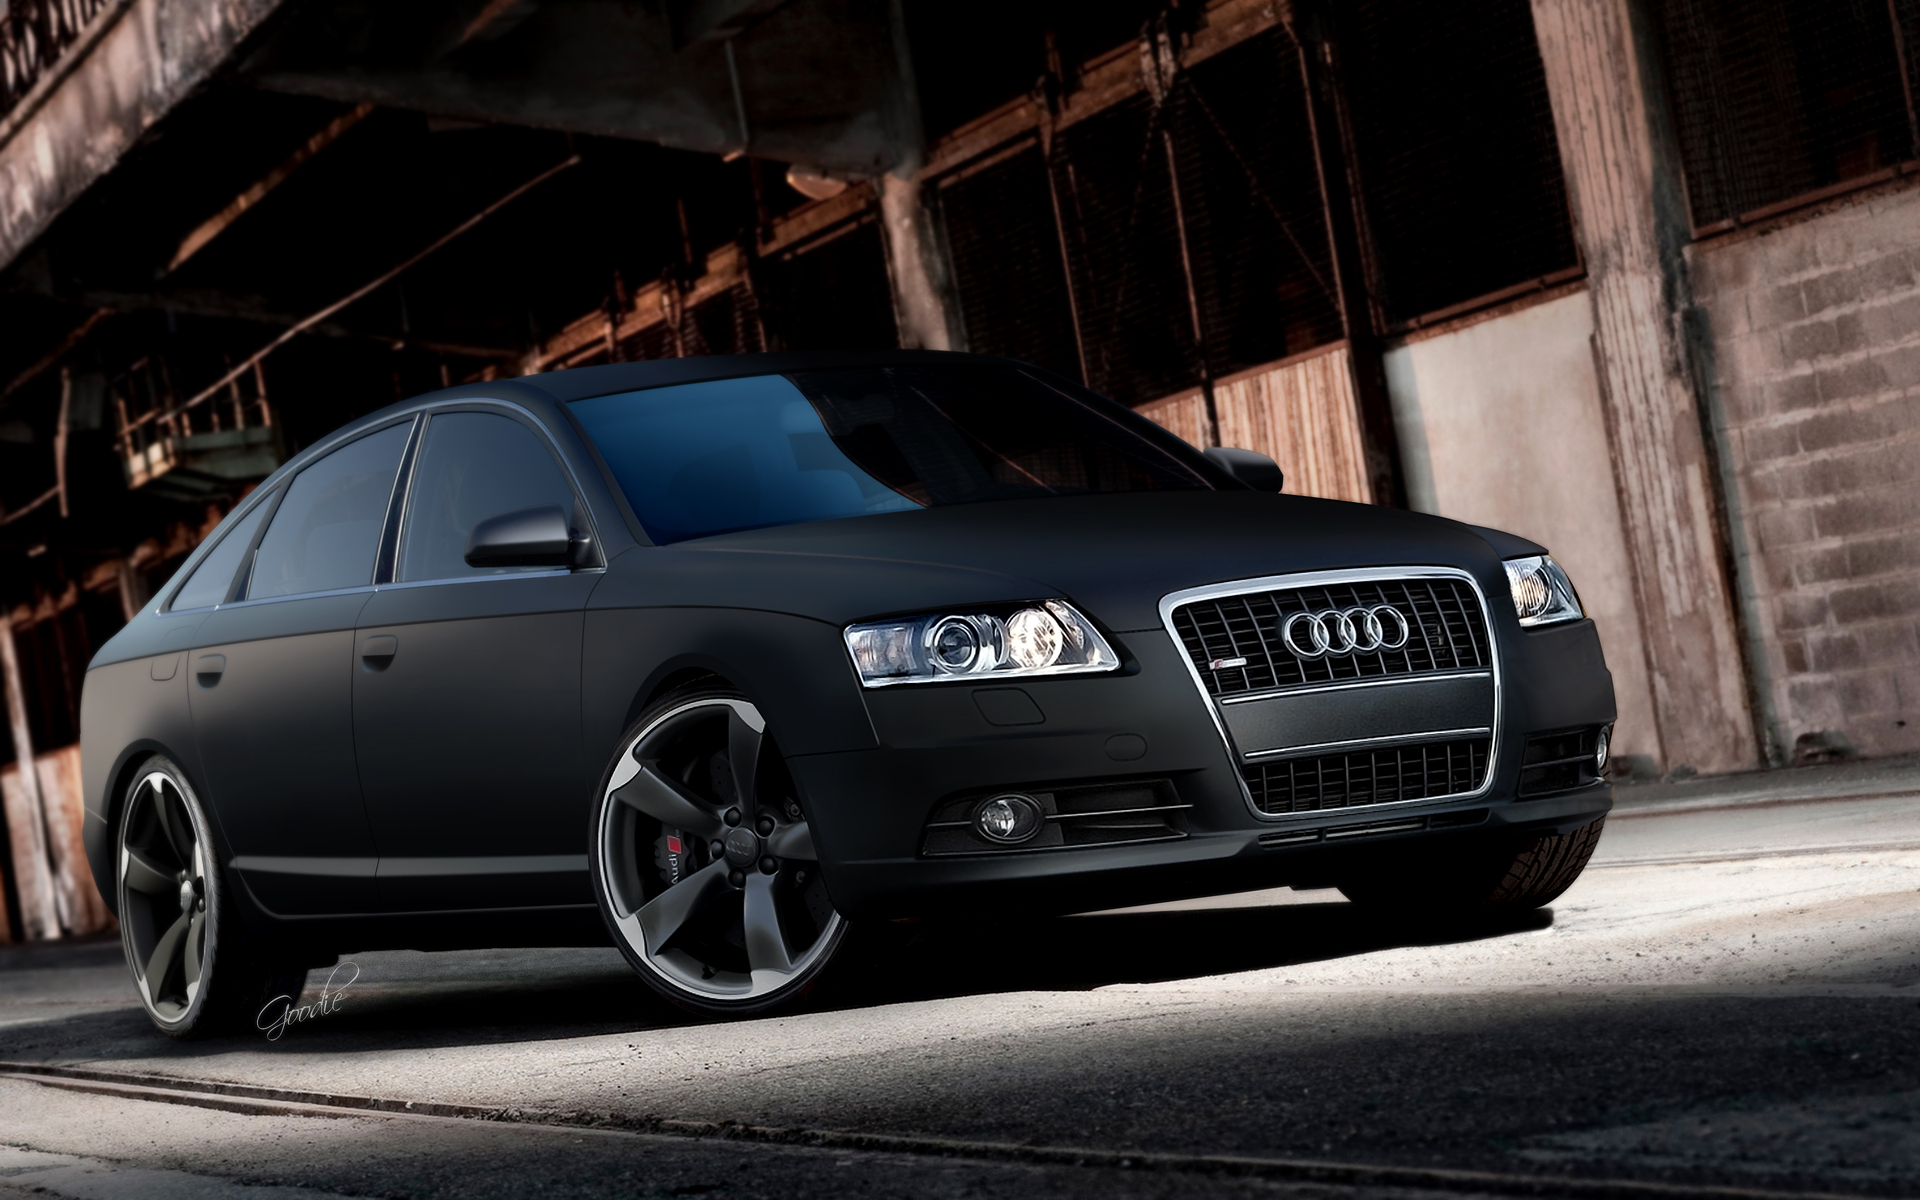 1920x1200 - Audi A6 Wallpapers 3